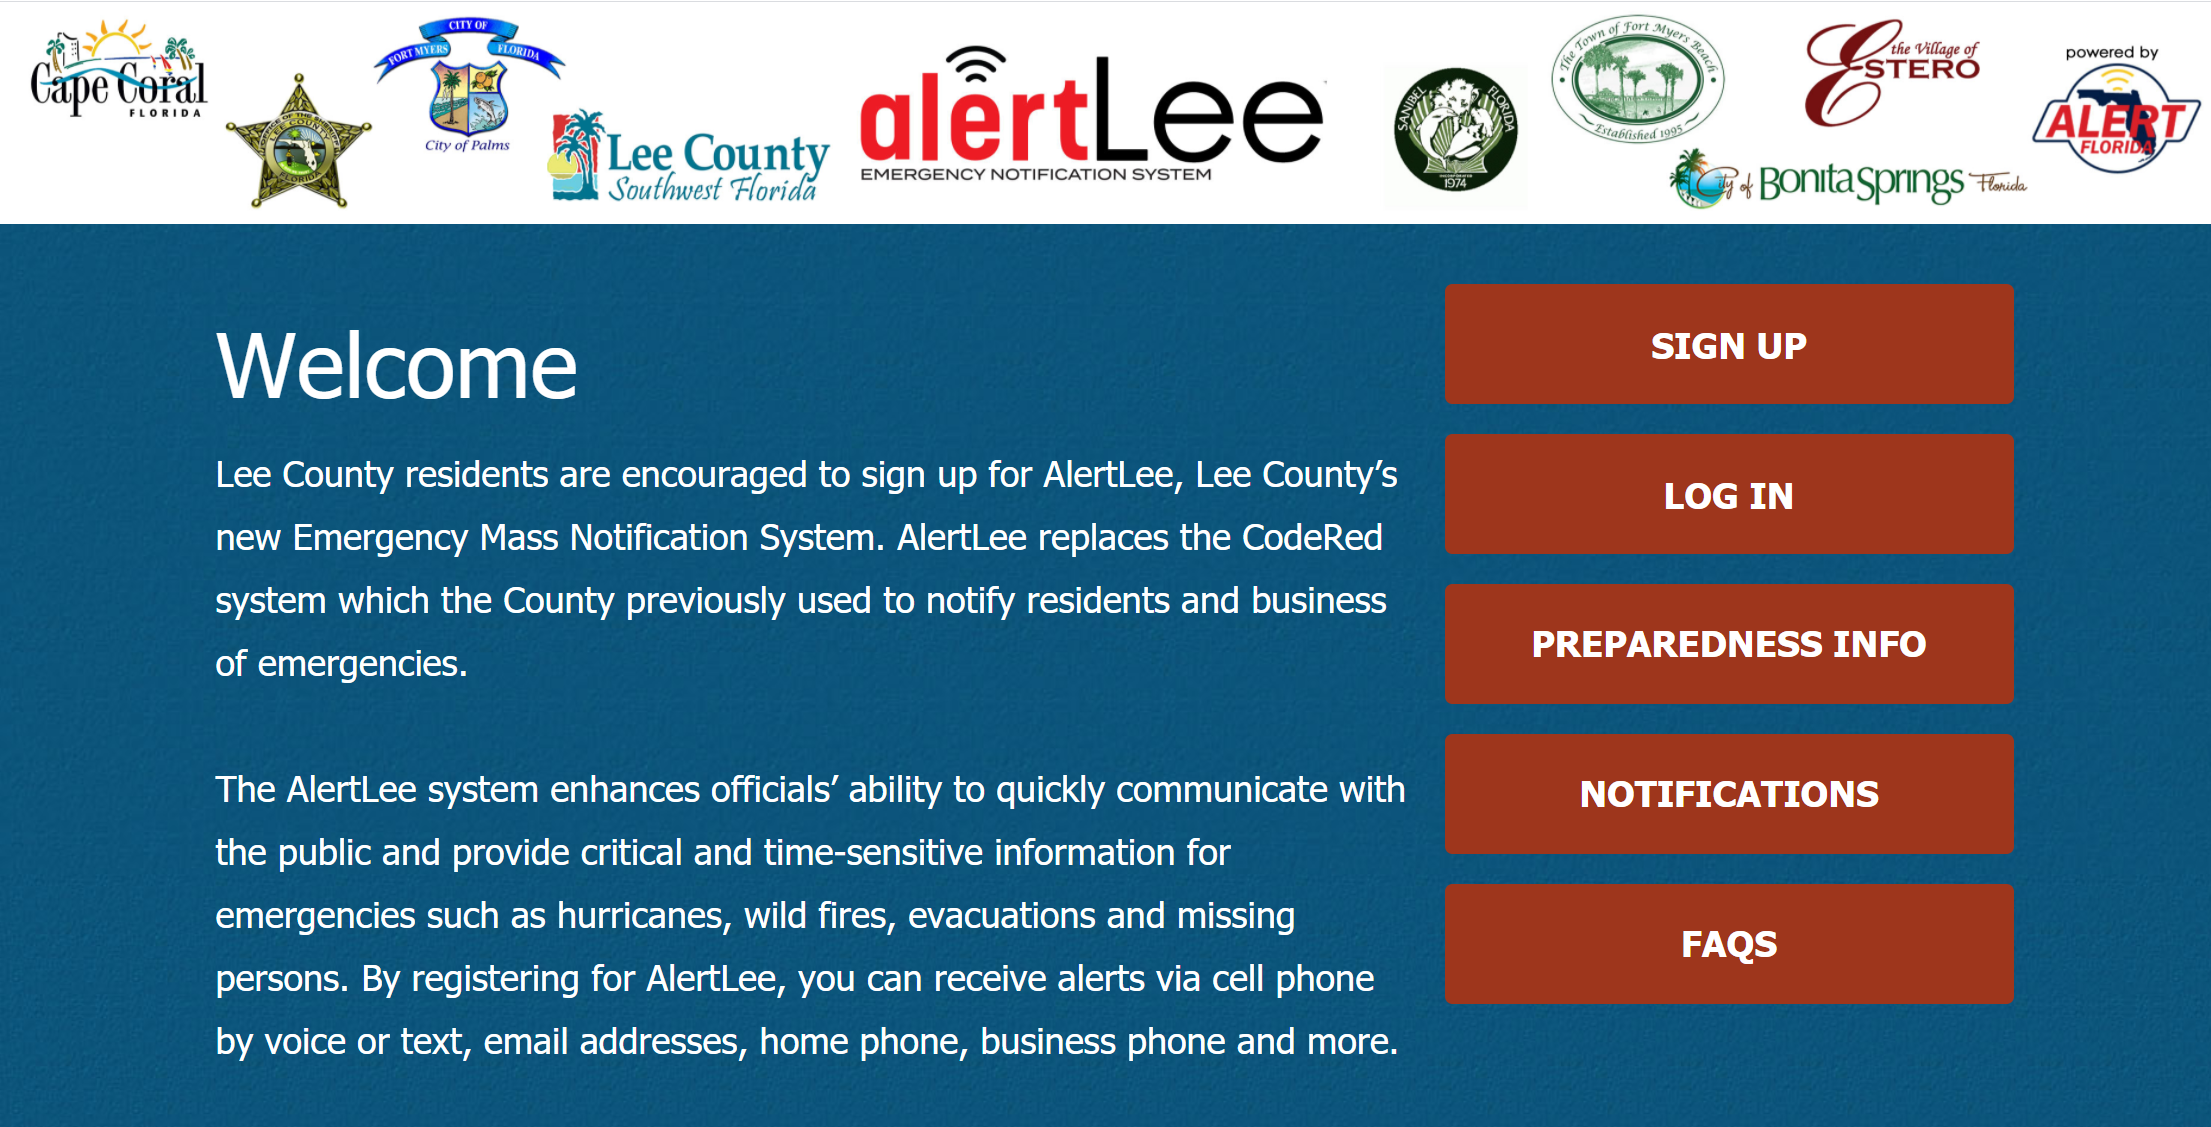 Alert Lee is Lee County's emergency notification system.